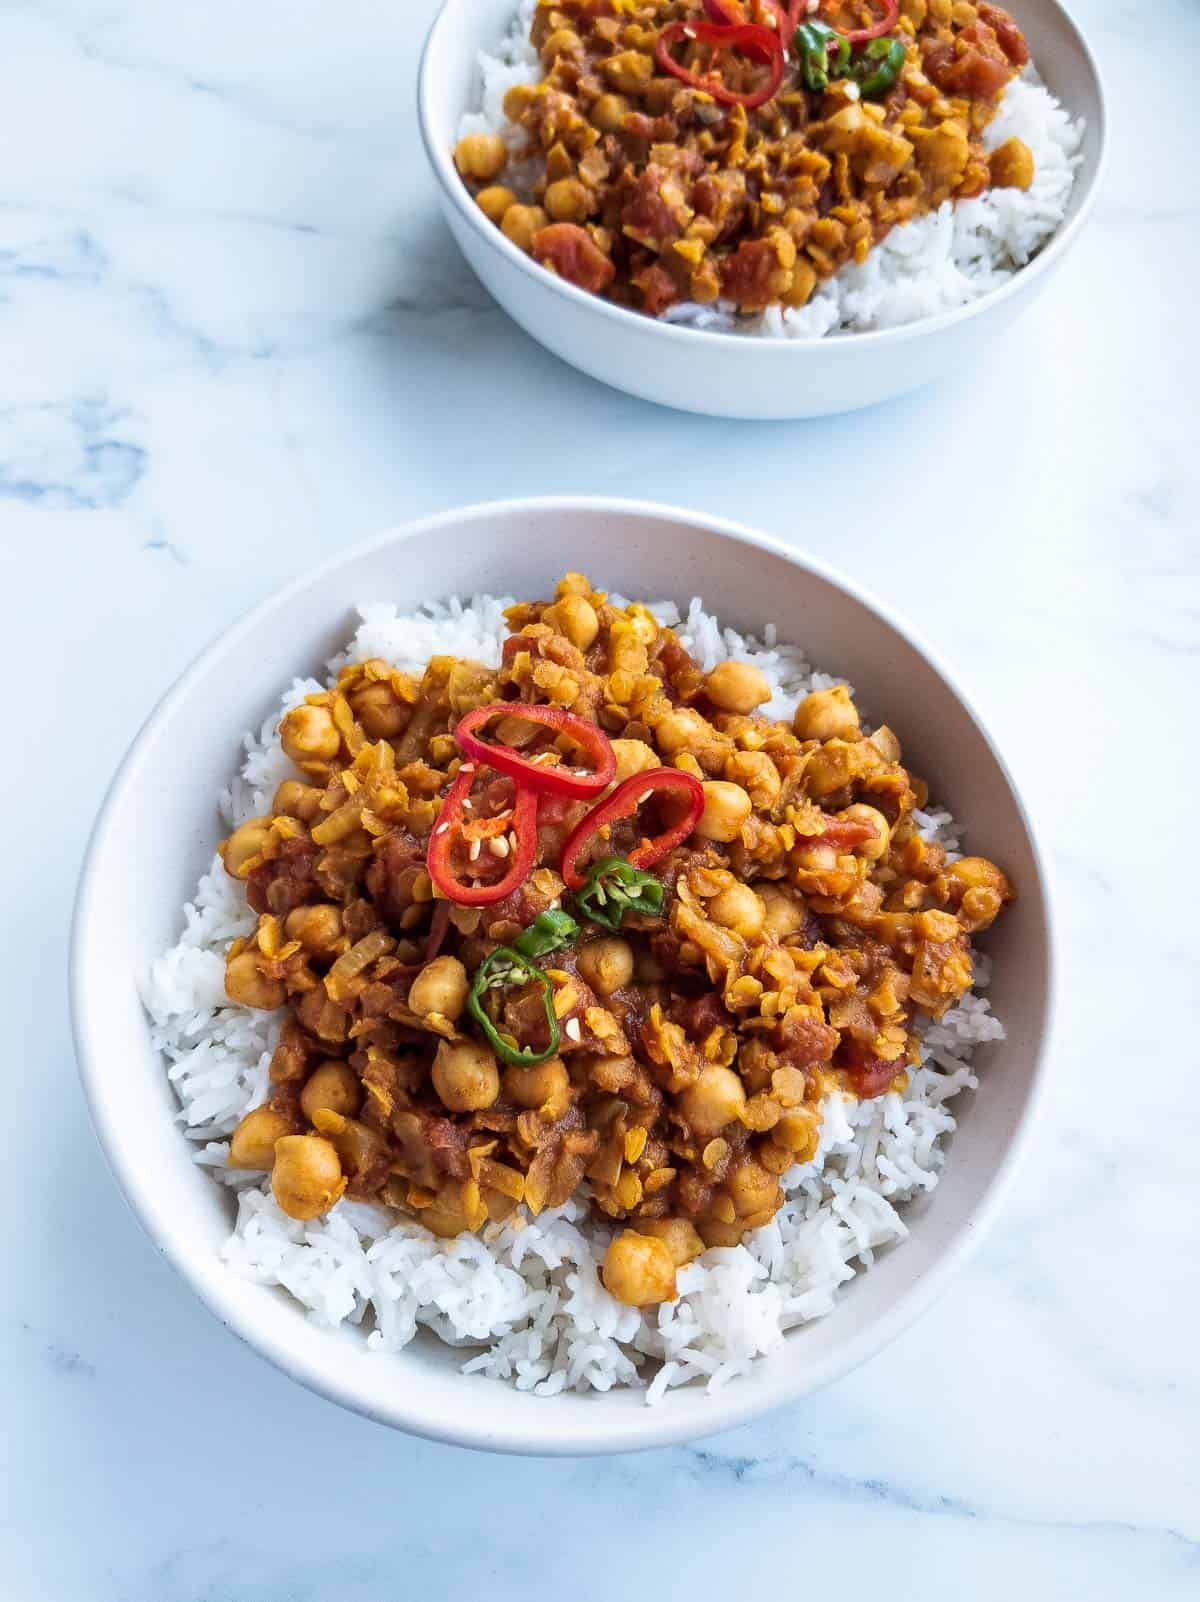 Vegan lentil curry in a bowl with rice.